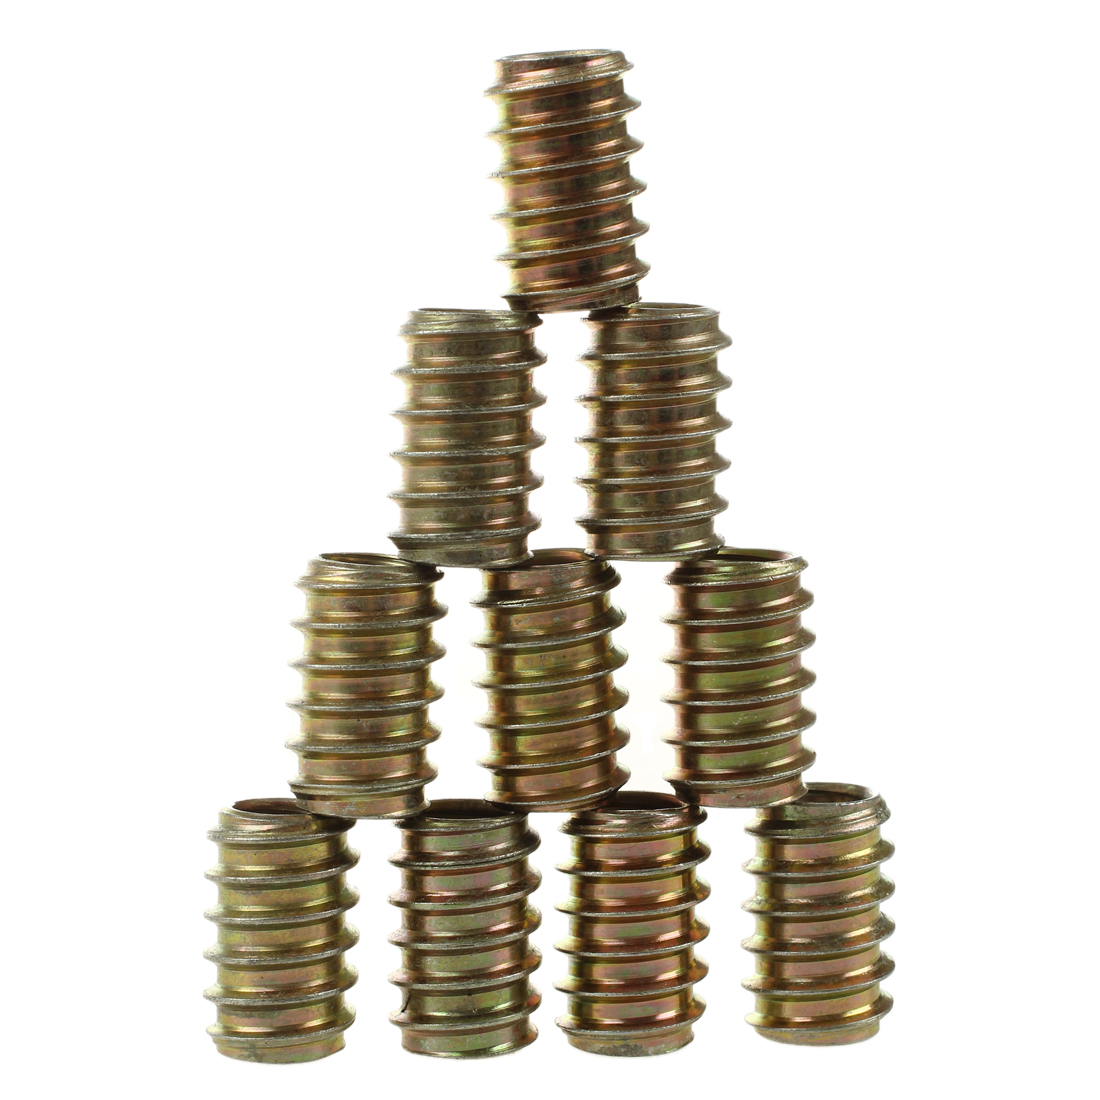 10pcs M8 E-Nut Wood Insert Nut Dowel Screw Fixing Furniture Legs and Bun Feet 8x20mm